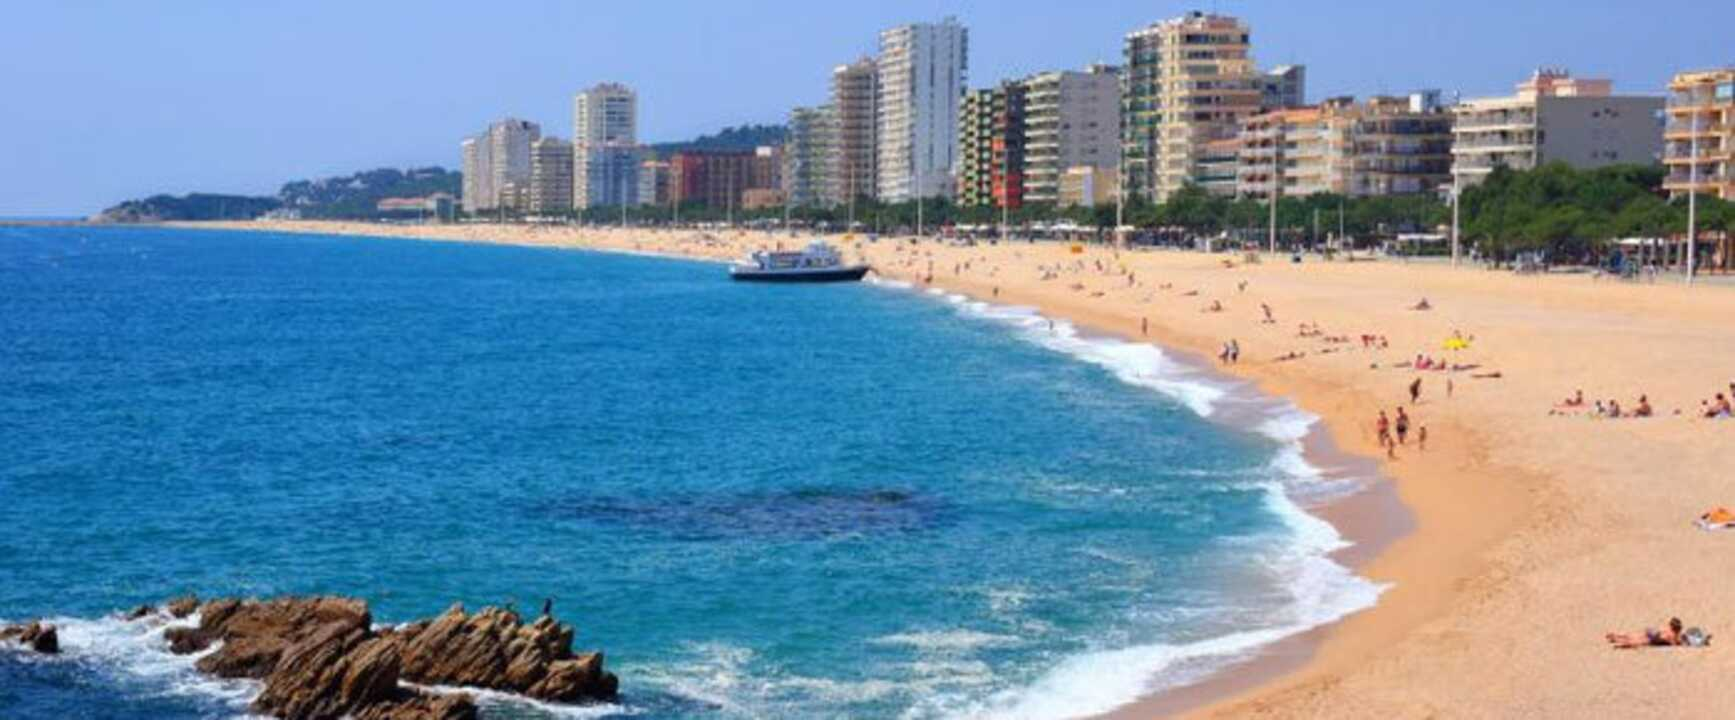 Cheap holidays to costa almeria on the beach for Costa sol almeria